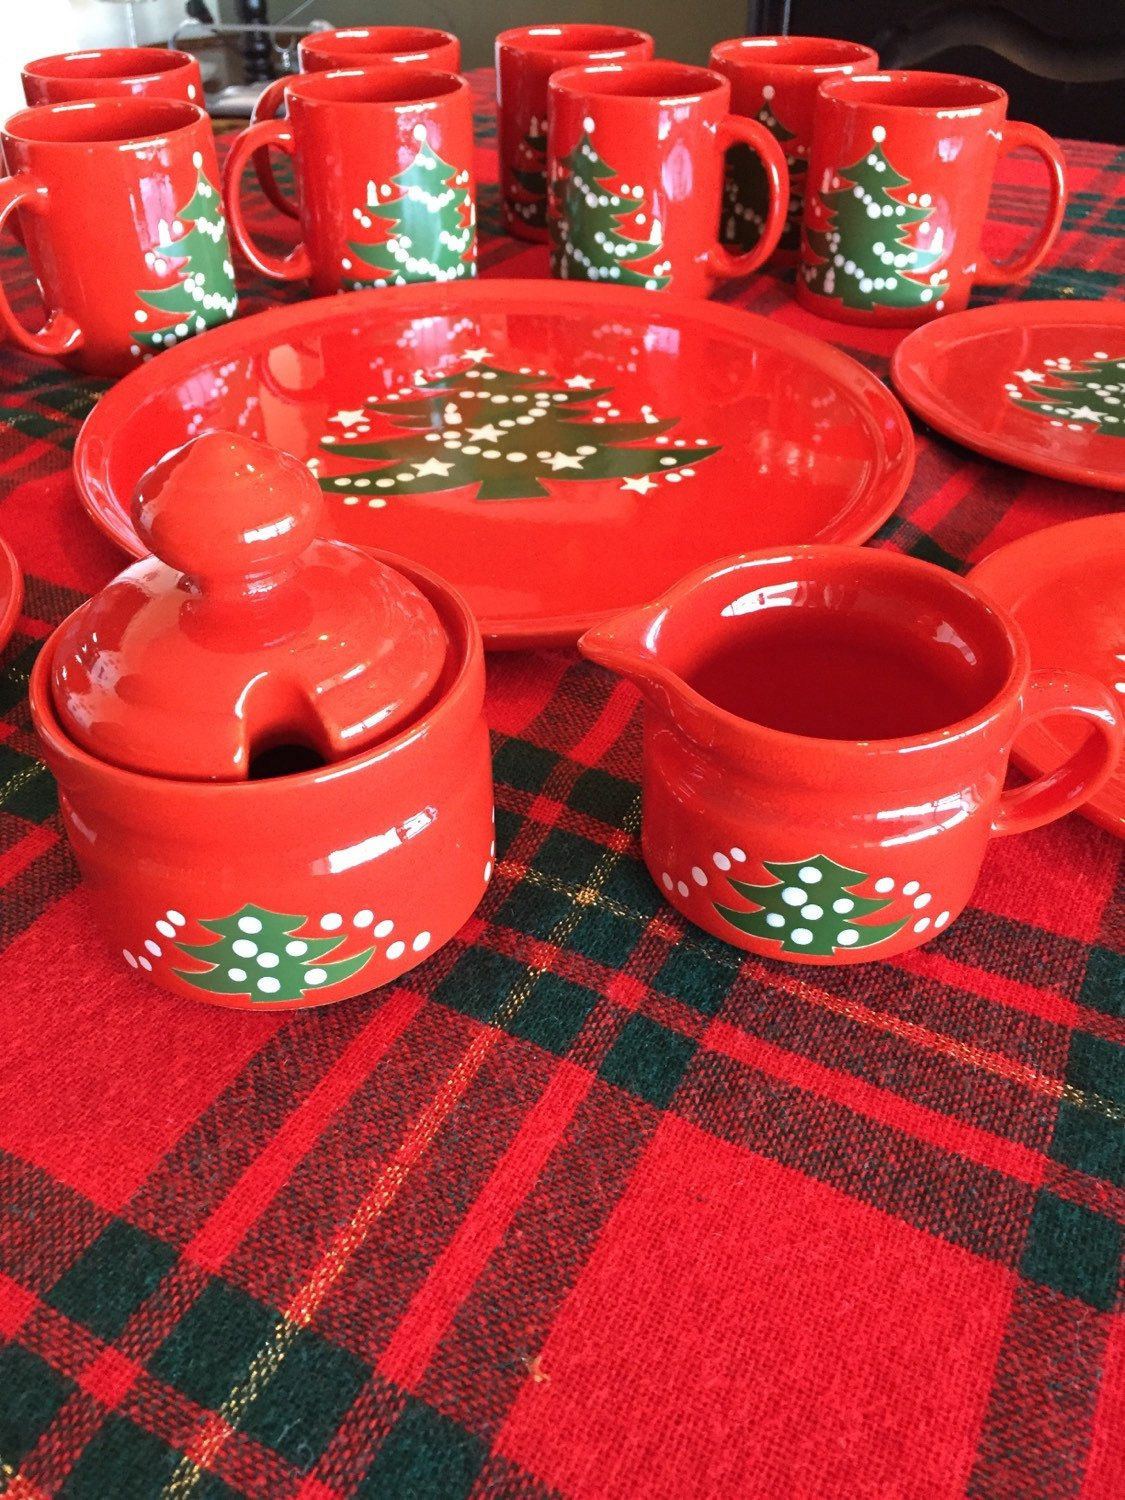 Waechtersbach Christmas Dishes | Dishes, Christmas dishes and Etsy